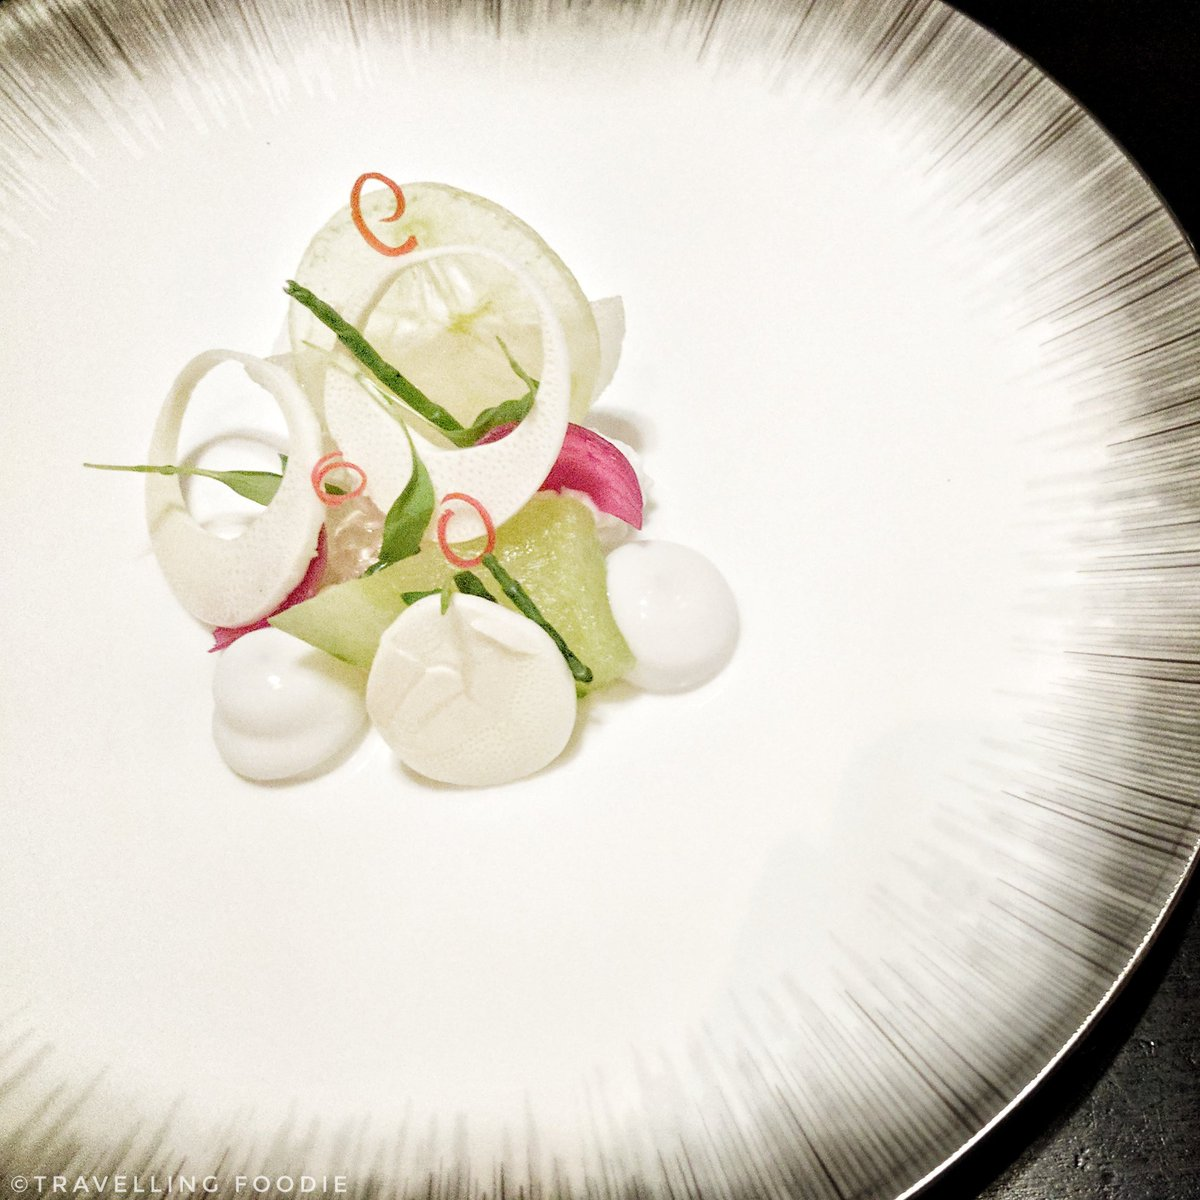 Traveling Foodie eats Hearts of Palm, Pear, Coconut, Finger Lime at Alo Restaurant in Toronto, Ontario, Canada